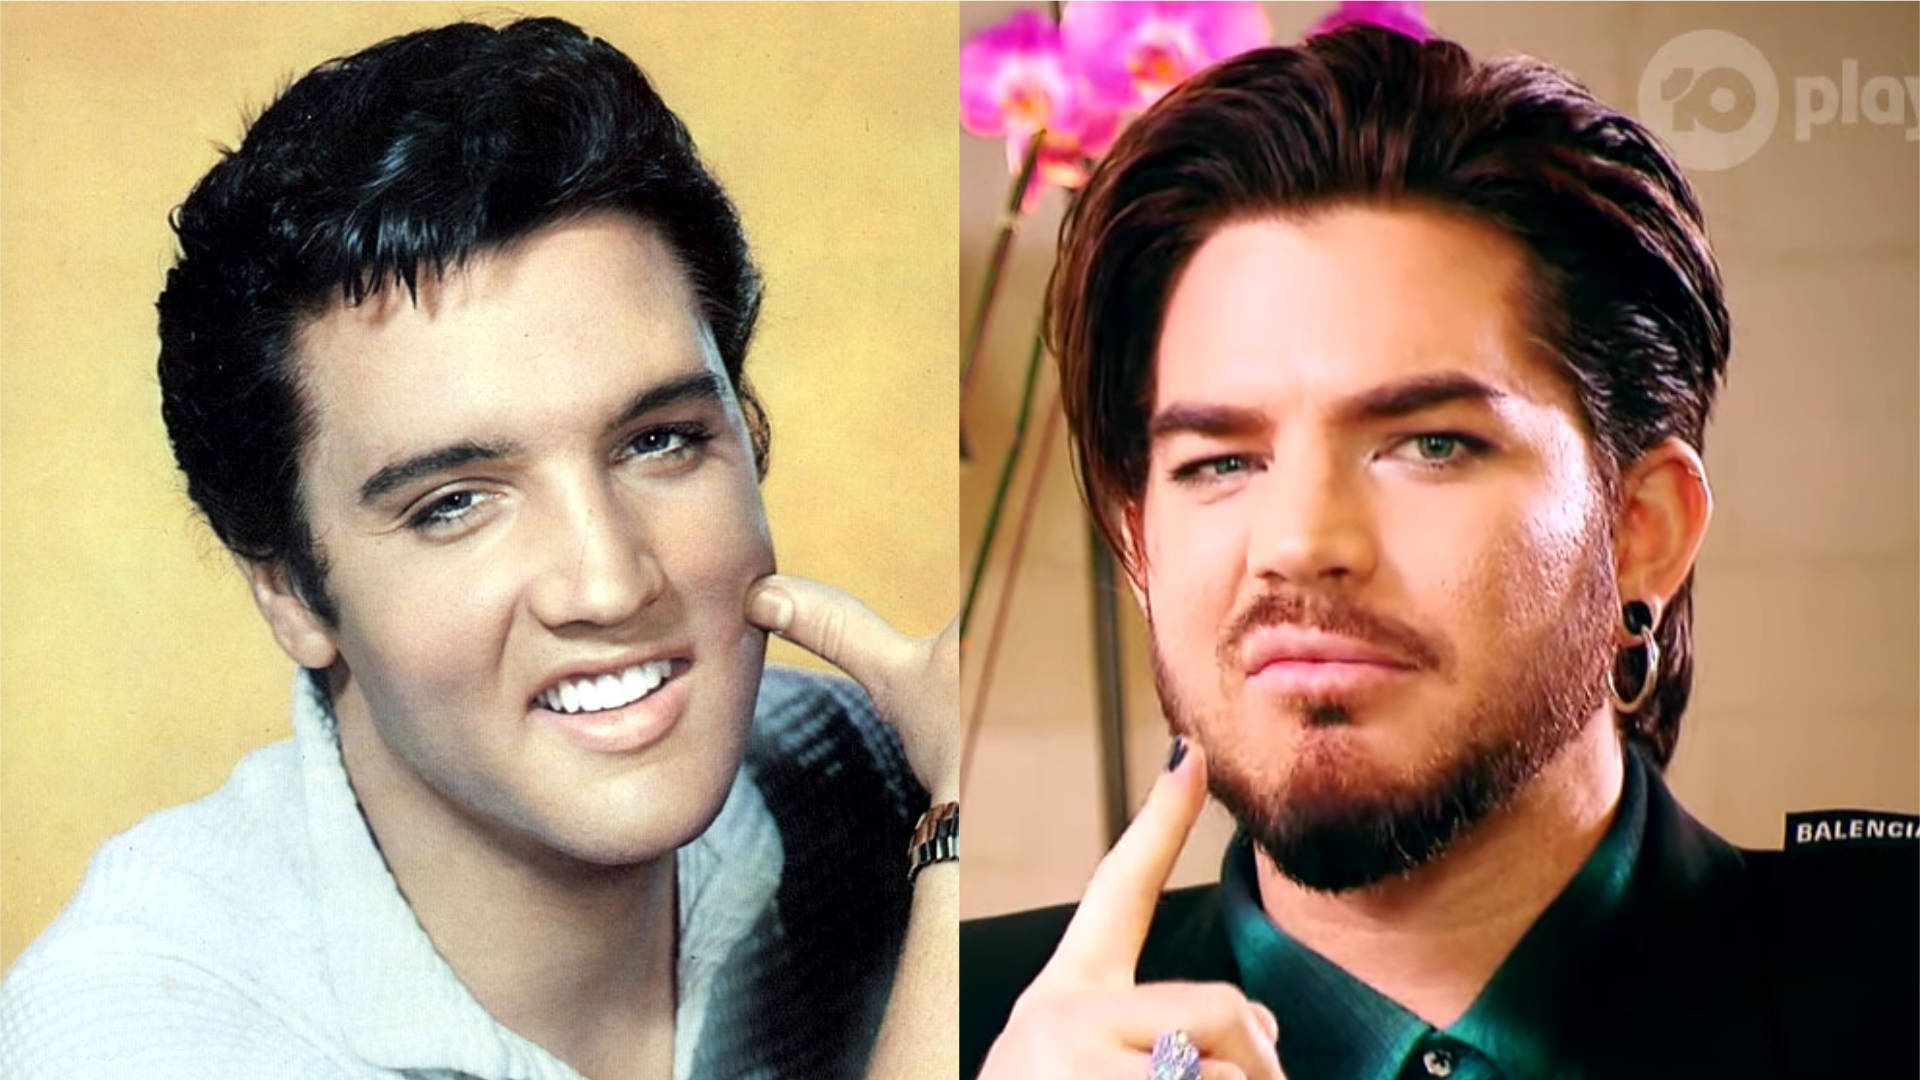 Adam Lambert as Elvis Presley: Queen singer wants to play